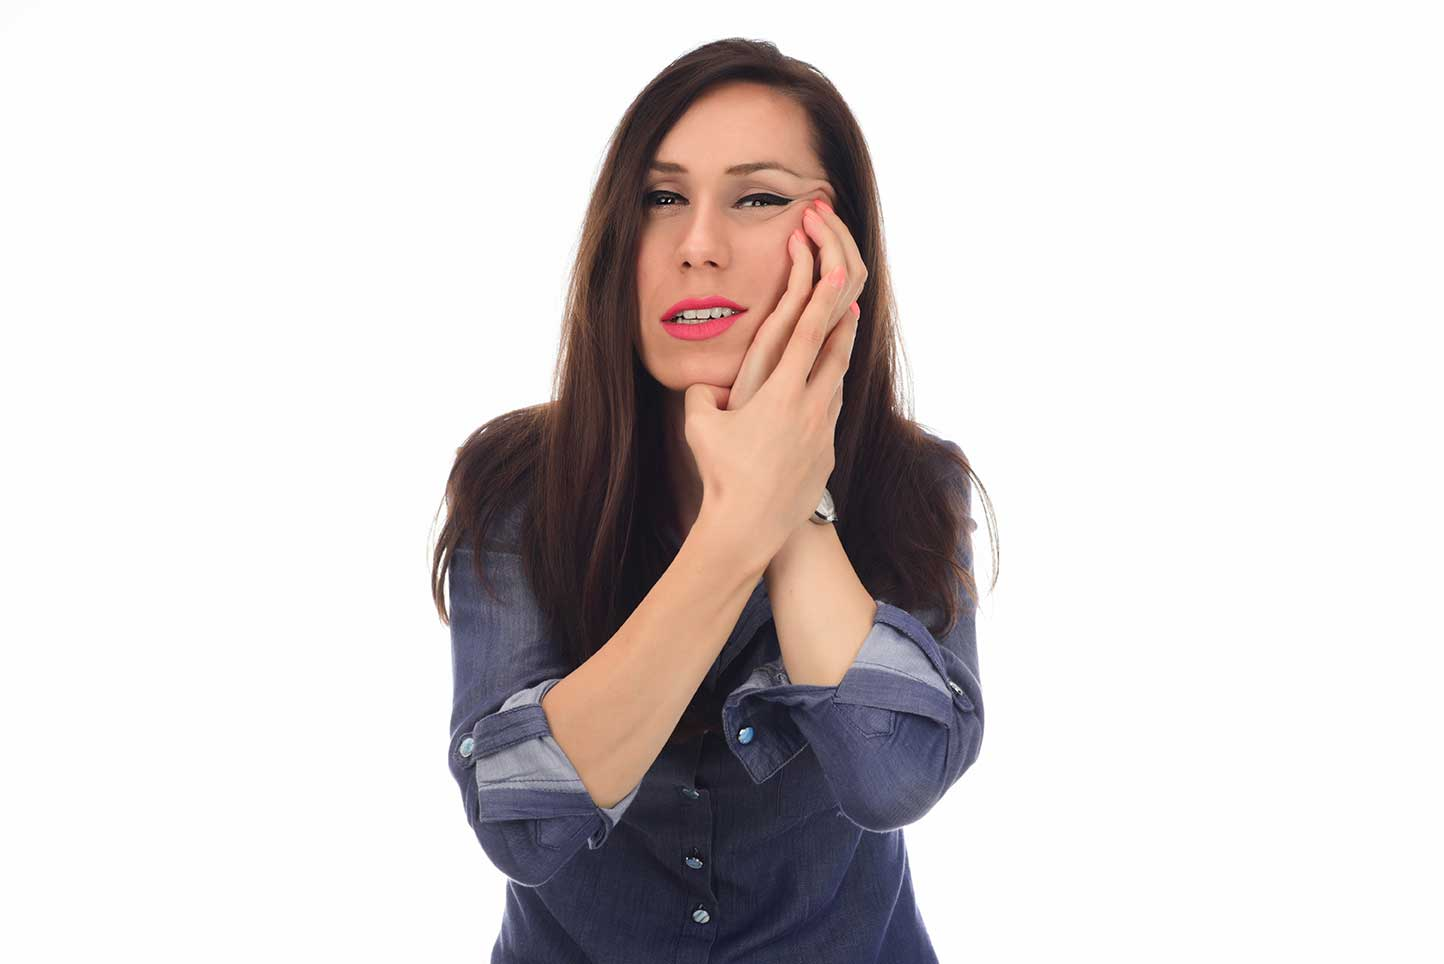 A young woman seeking TMJ treatment in Salinas, CA for a problematic tooth issue